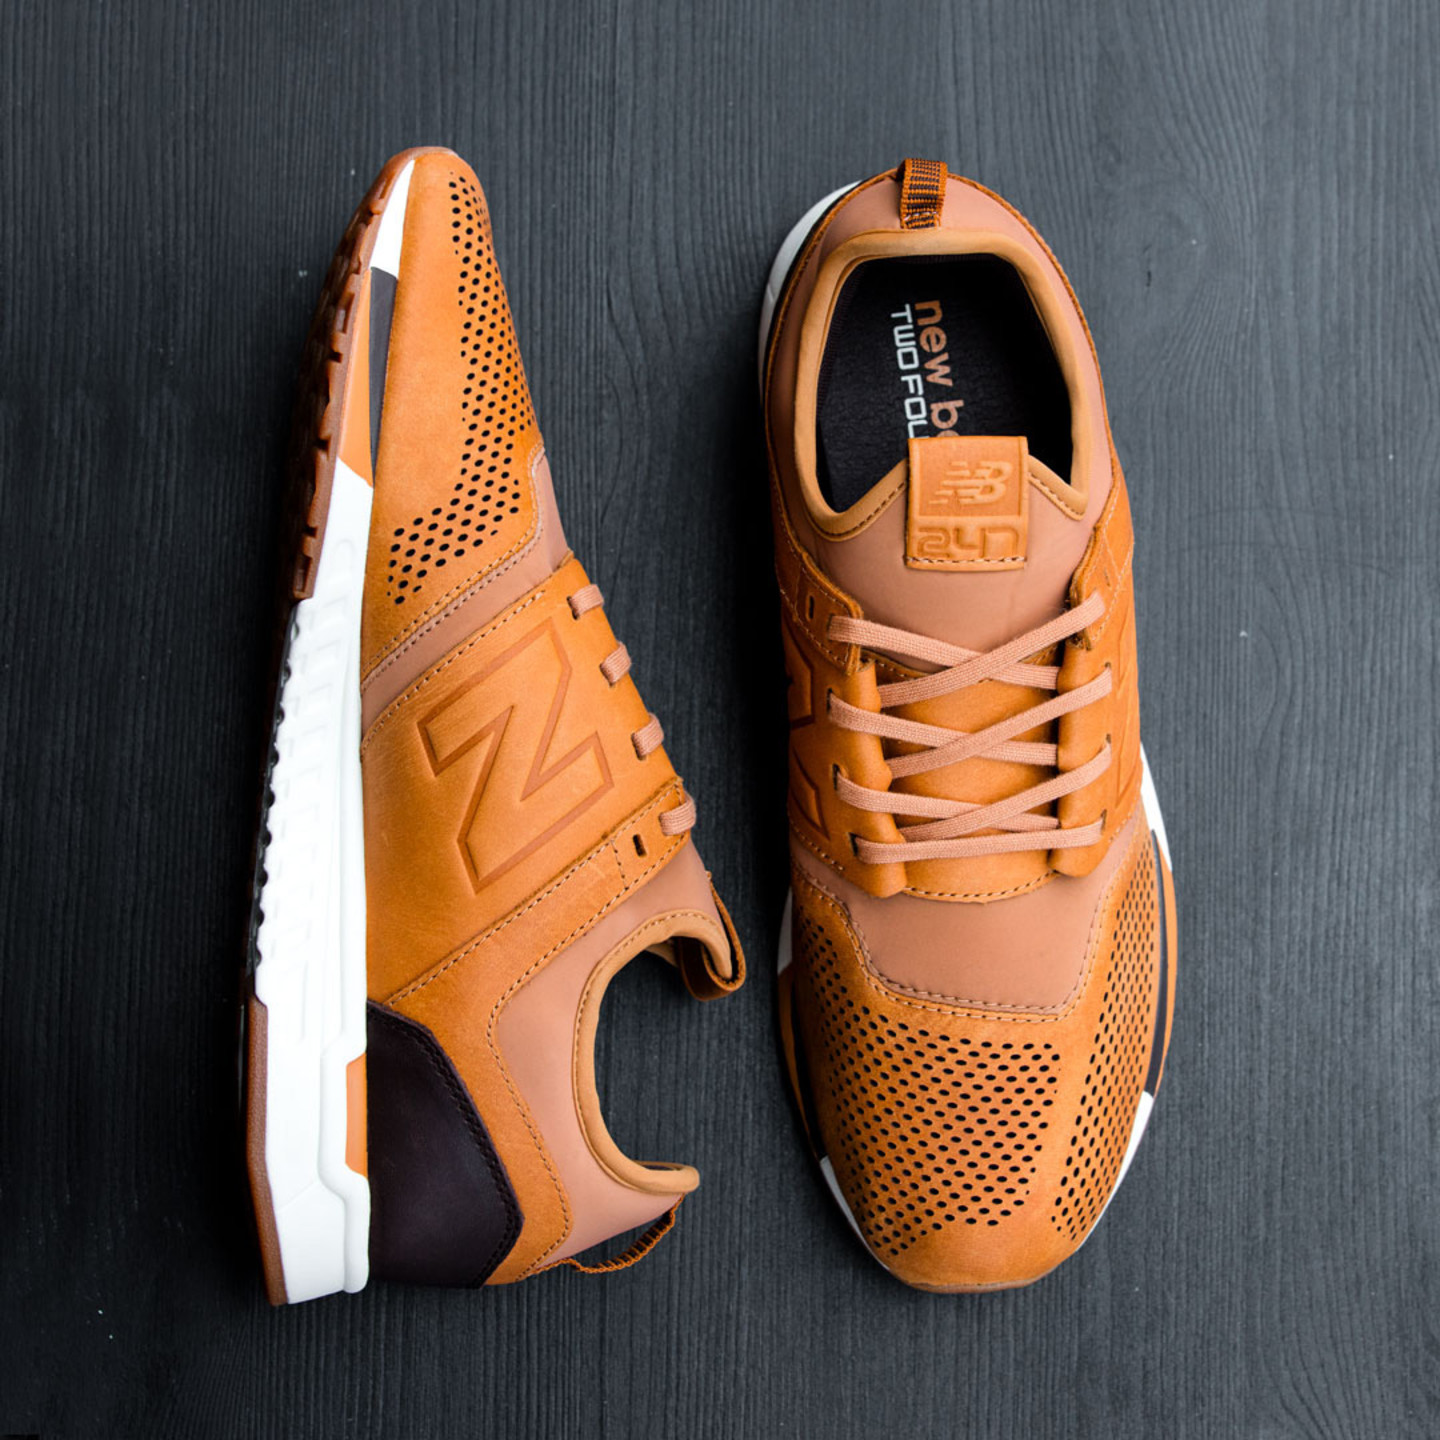 New Balance MRL 247 'Luxe Pack' Tan / Cream / Dark Brown MRL247TA-44.5